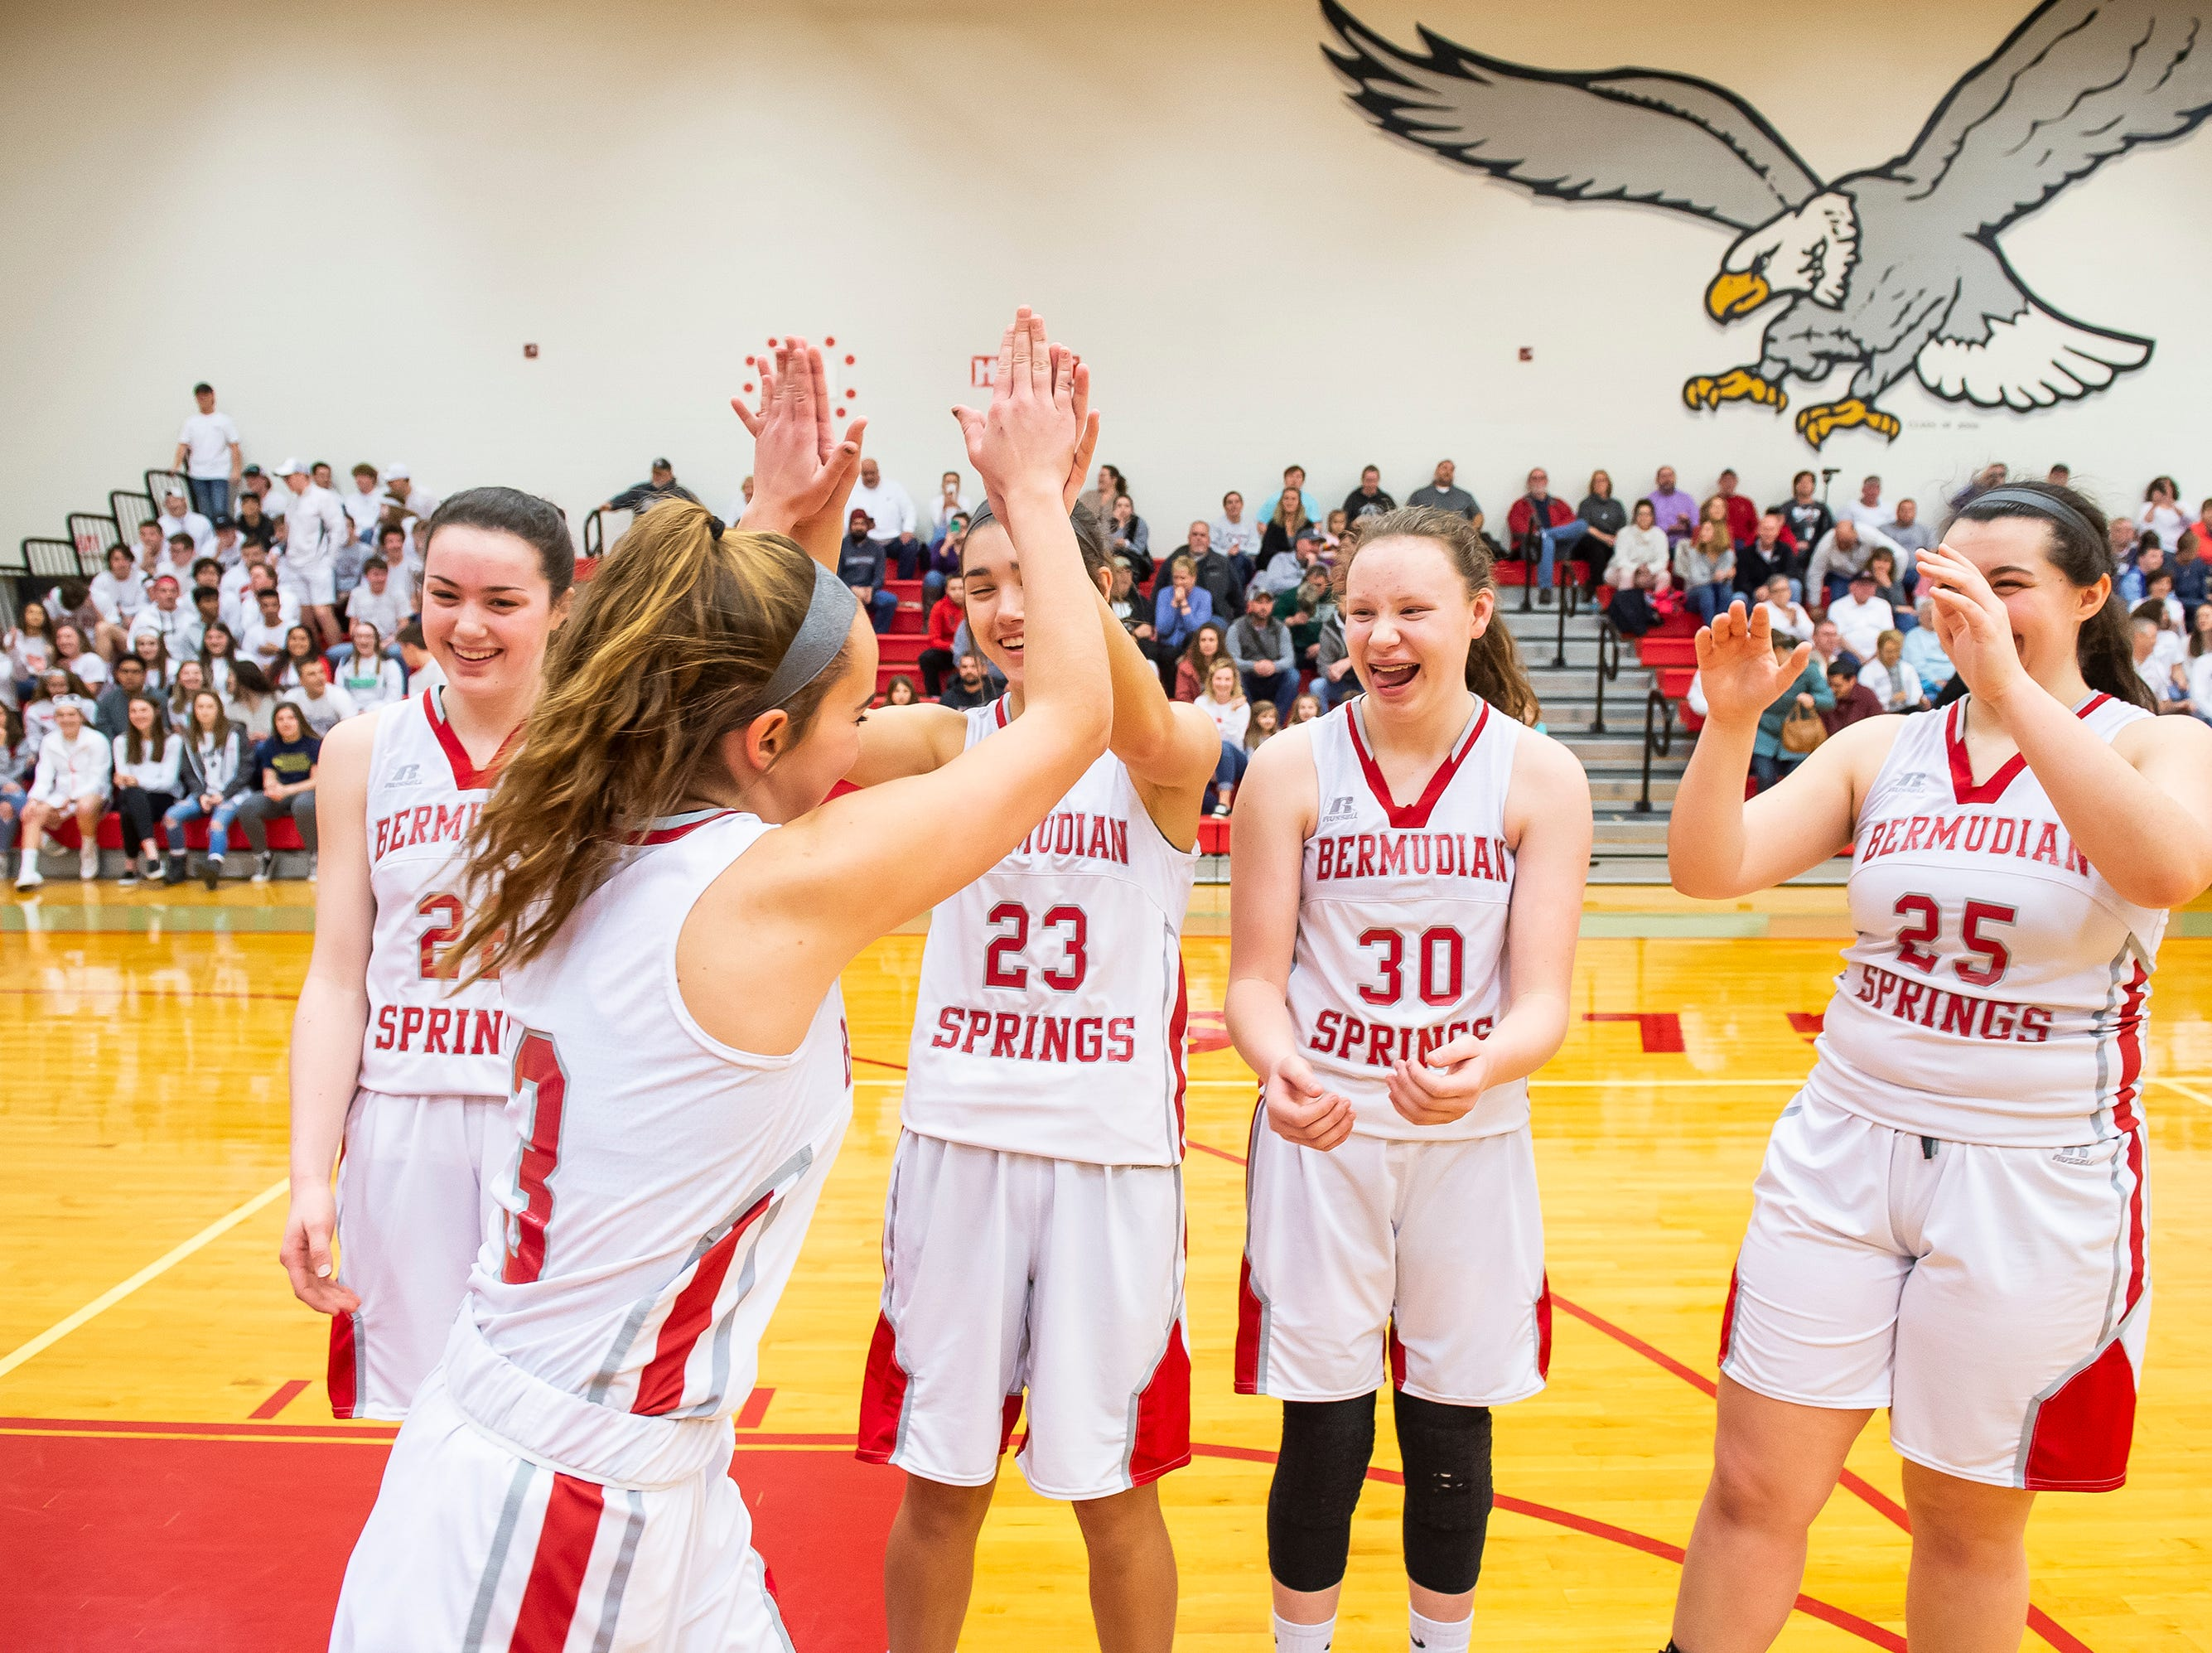 Bermudian Springs' Skyler West high-fives her teammates prior to a game against Northern Lebanon in the first round of the District III 4-A playoffs Tuesday, February 19, 2019. The Eagles won 58-52.